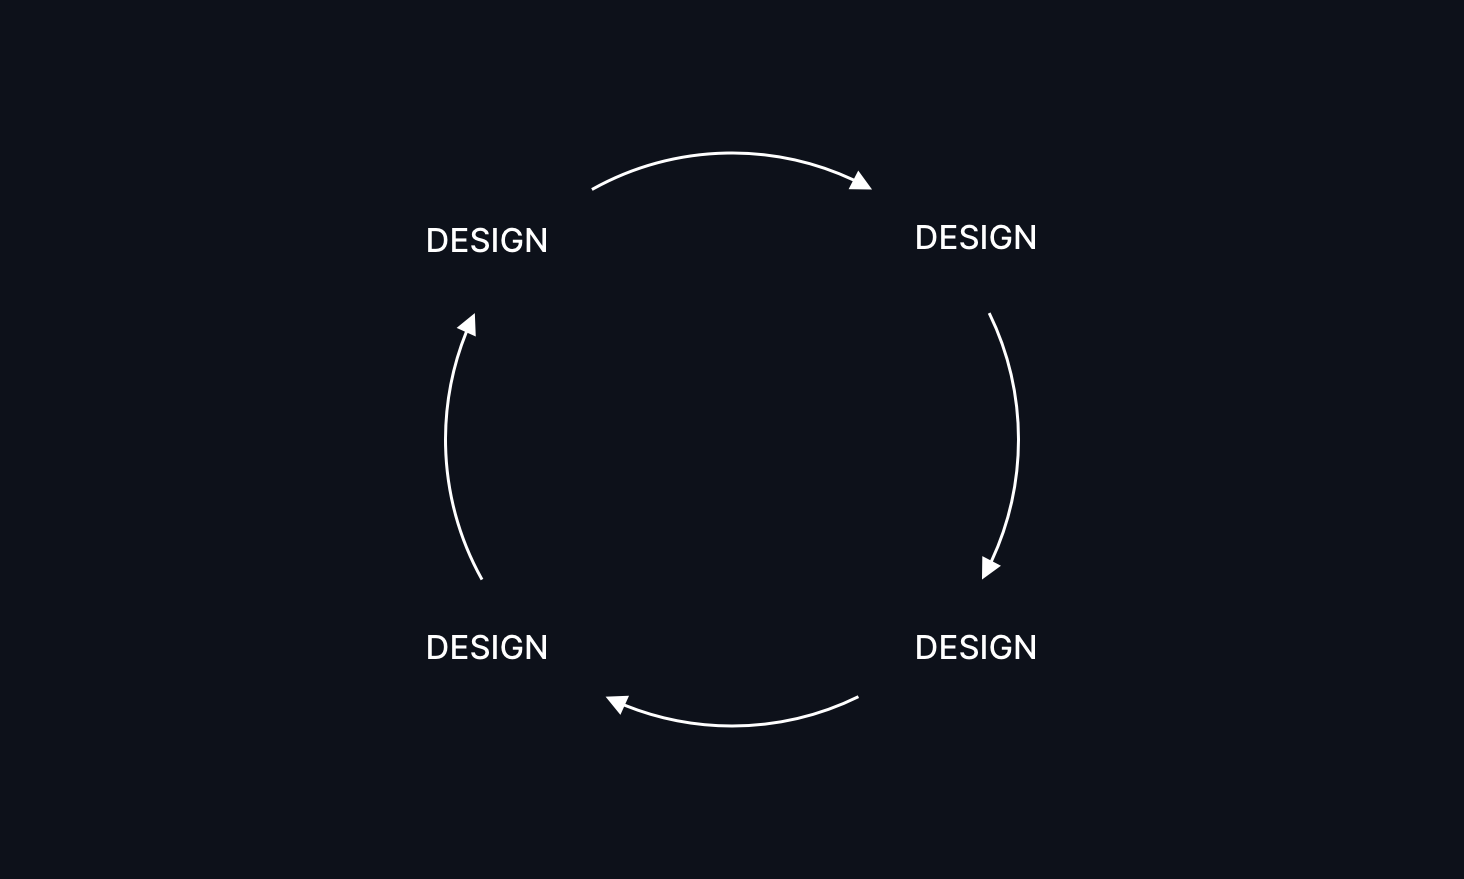 Work a lot, do design consistently.